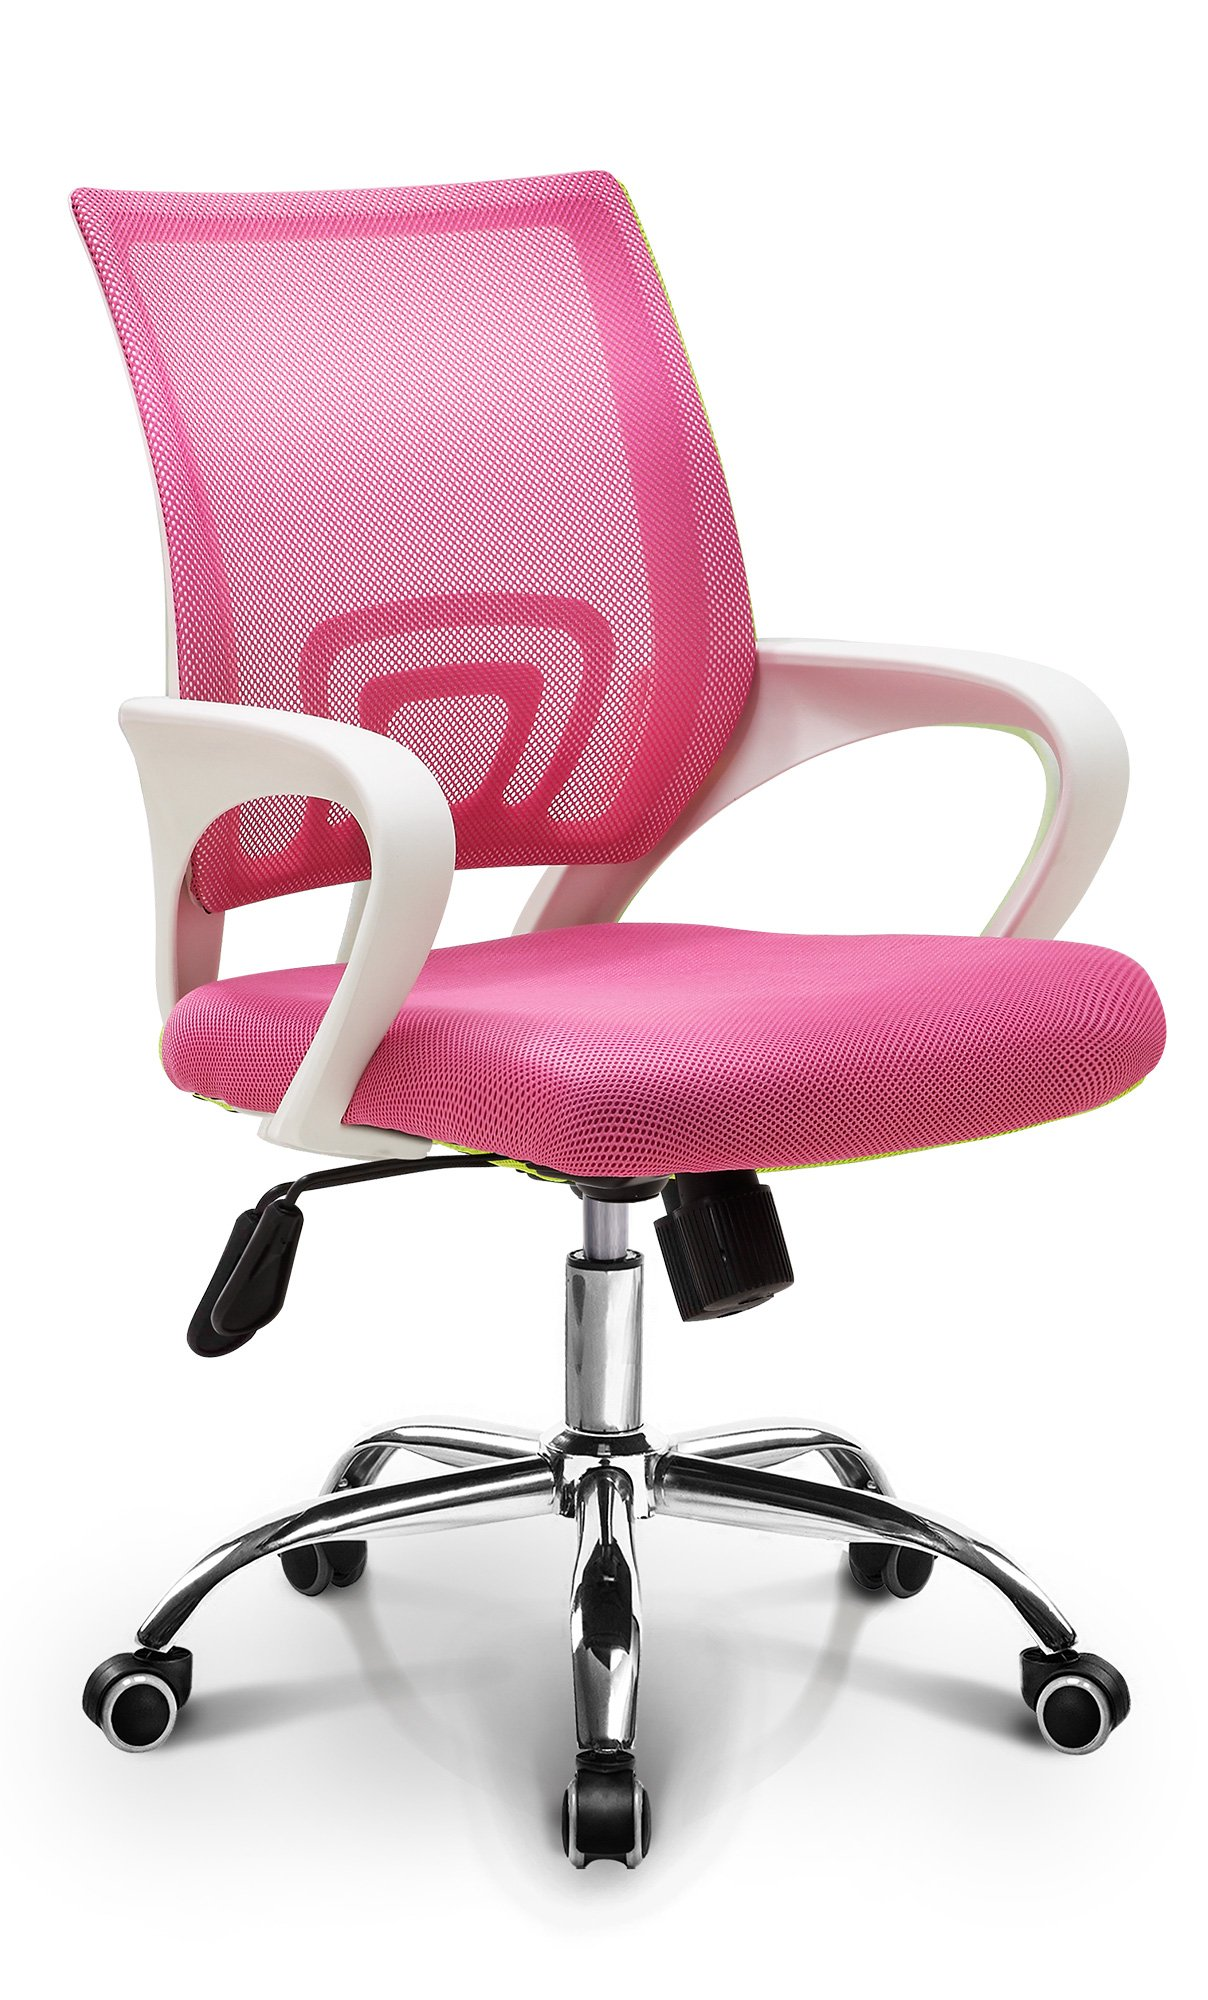 Neo Chair Latex Seat Home Office Chair Conference Room Chair Desk Task Computer Mesh Chair : Ergonomic Lumbar Support Swivel Adjustable Tilt Mid Back Wheel, (Fashion Mesh Pink)